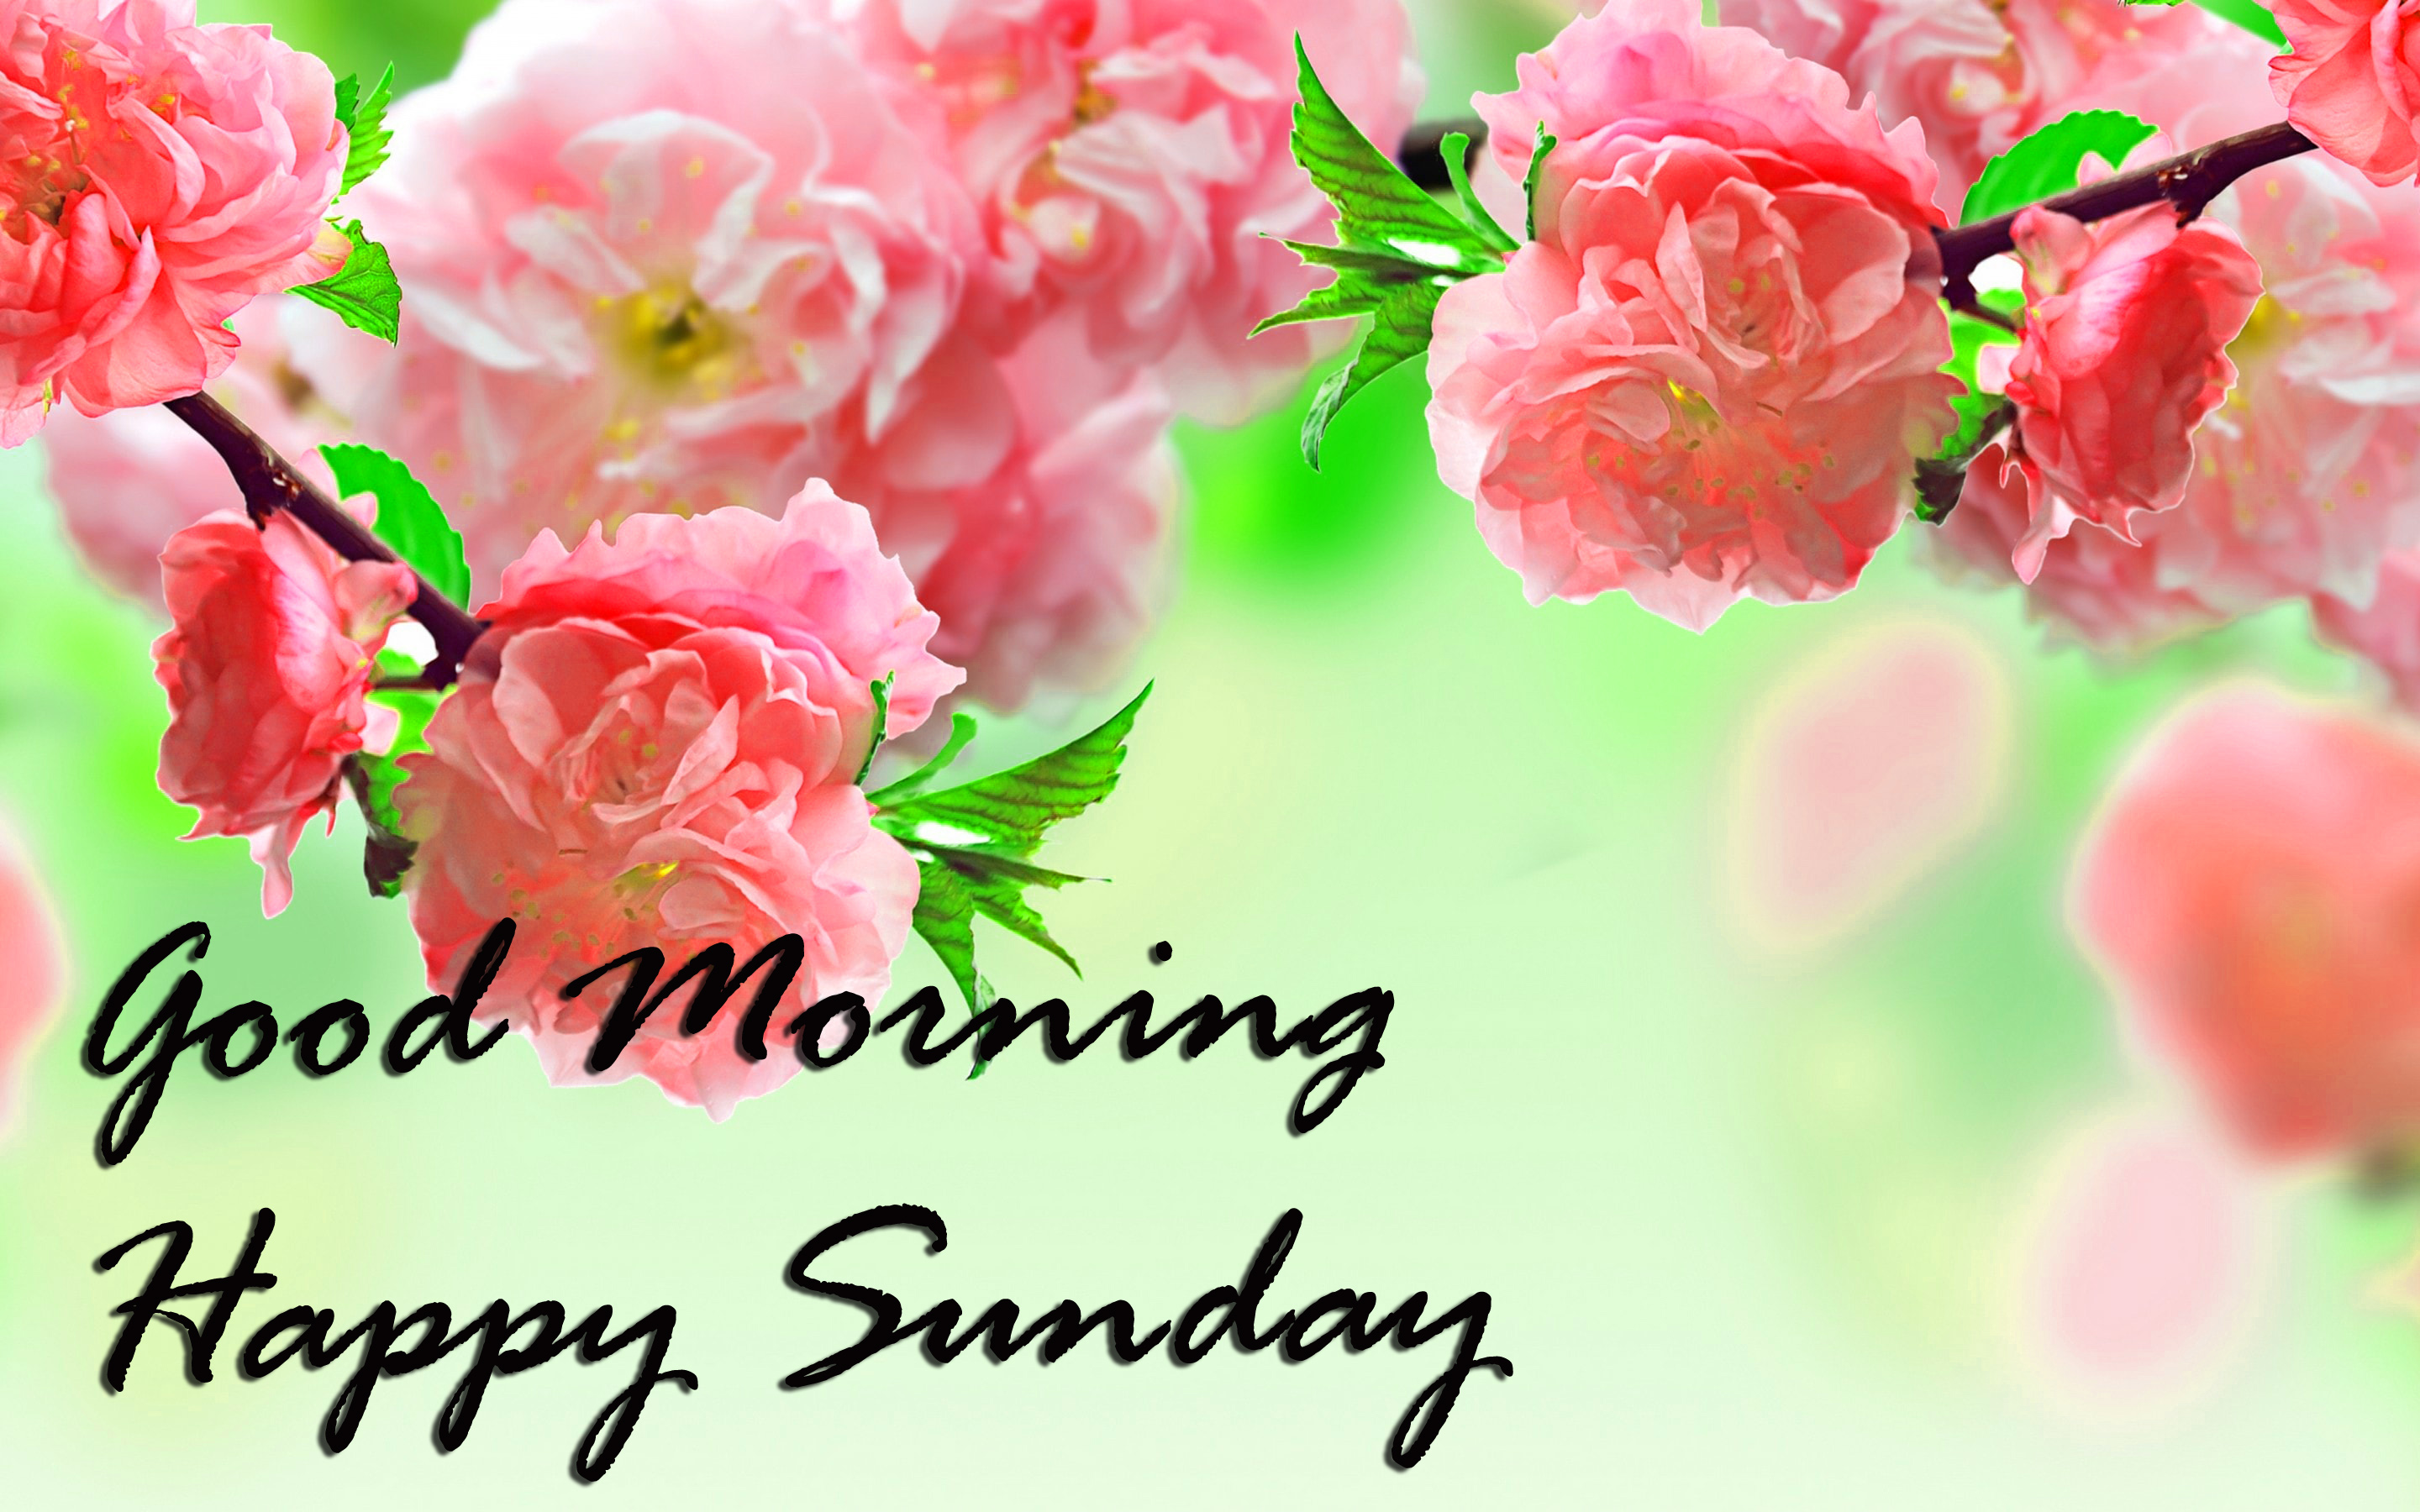 Sunday Good Morning Photo pics Download for Facebook